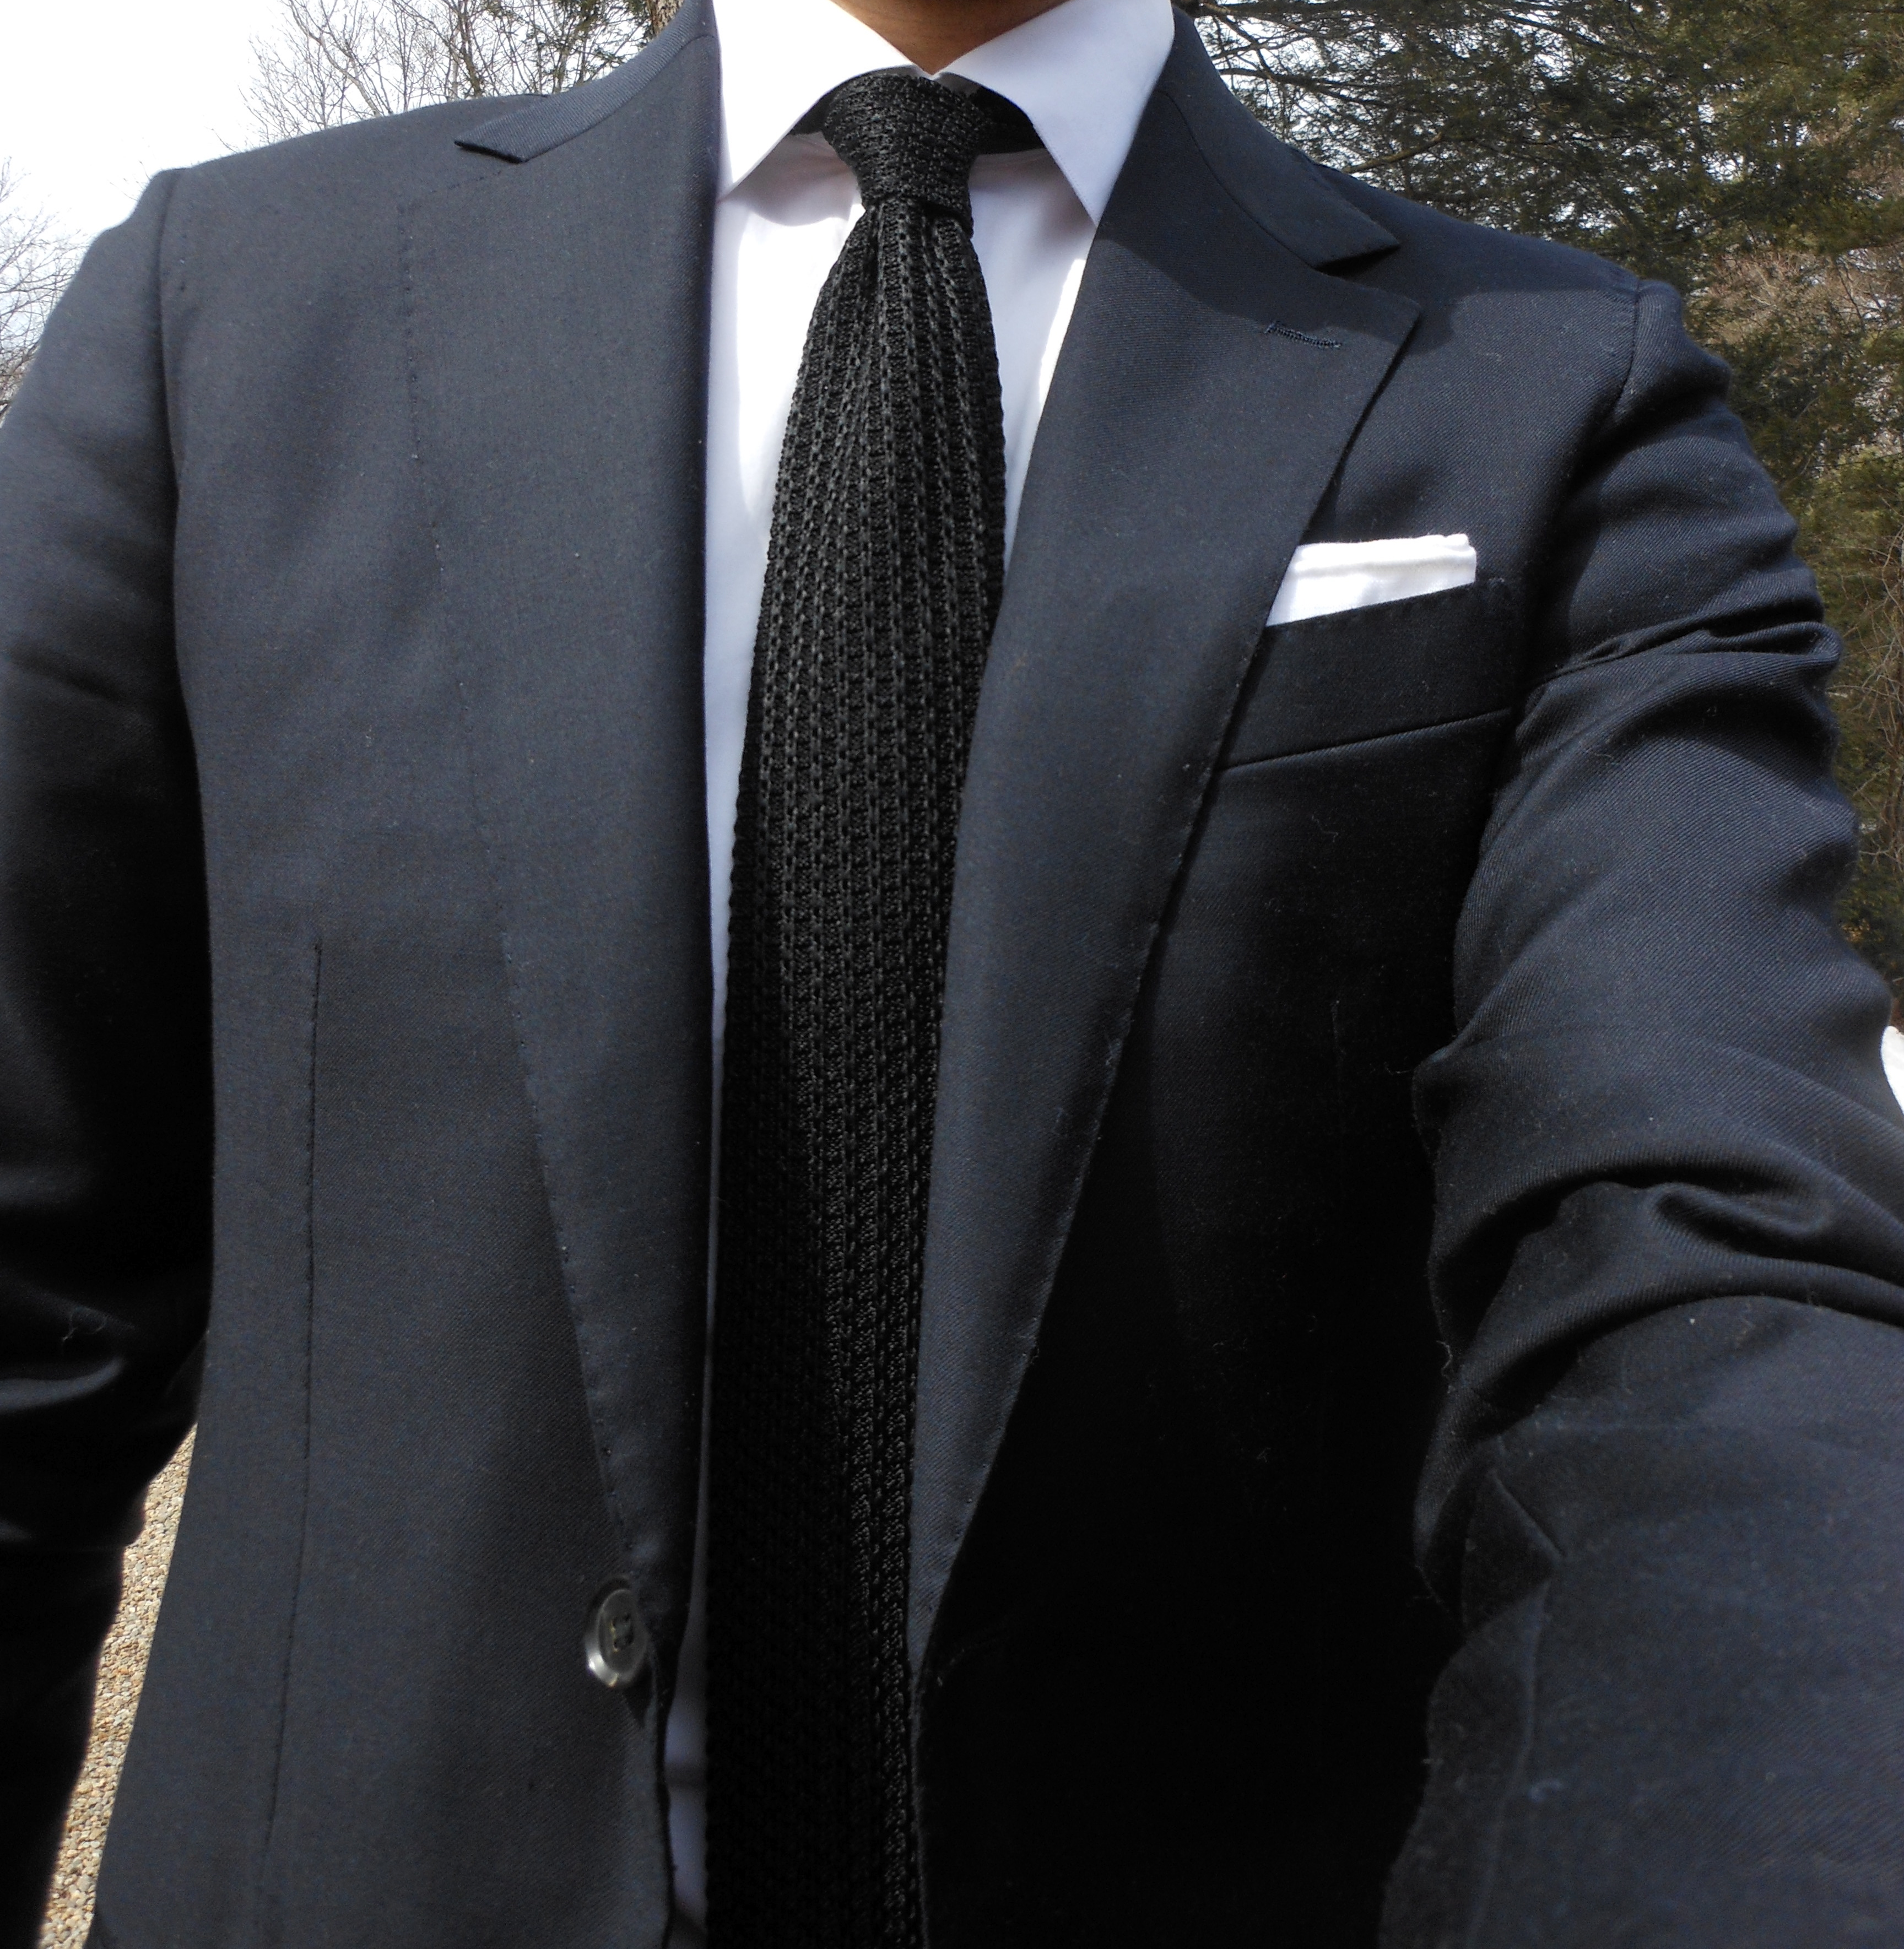 Versatility of black knit tie styleforum for Shirt and tie for charcoal suit